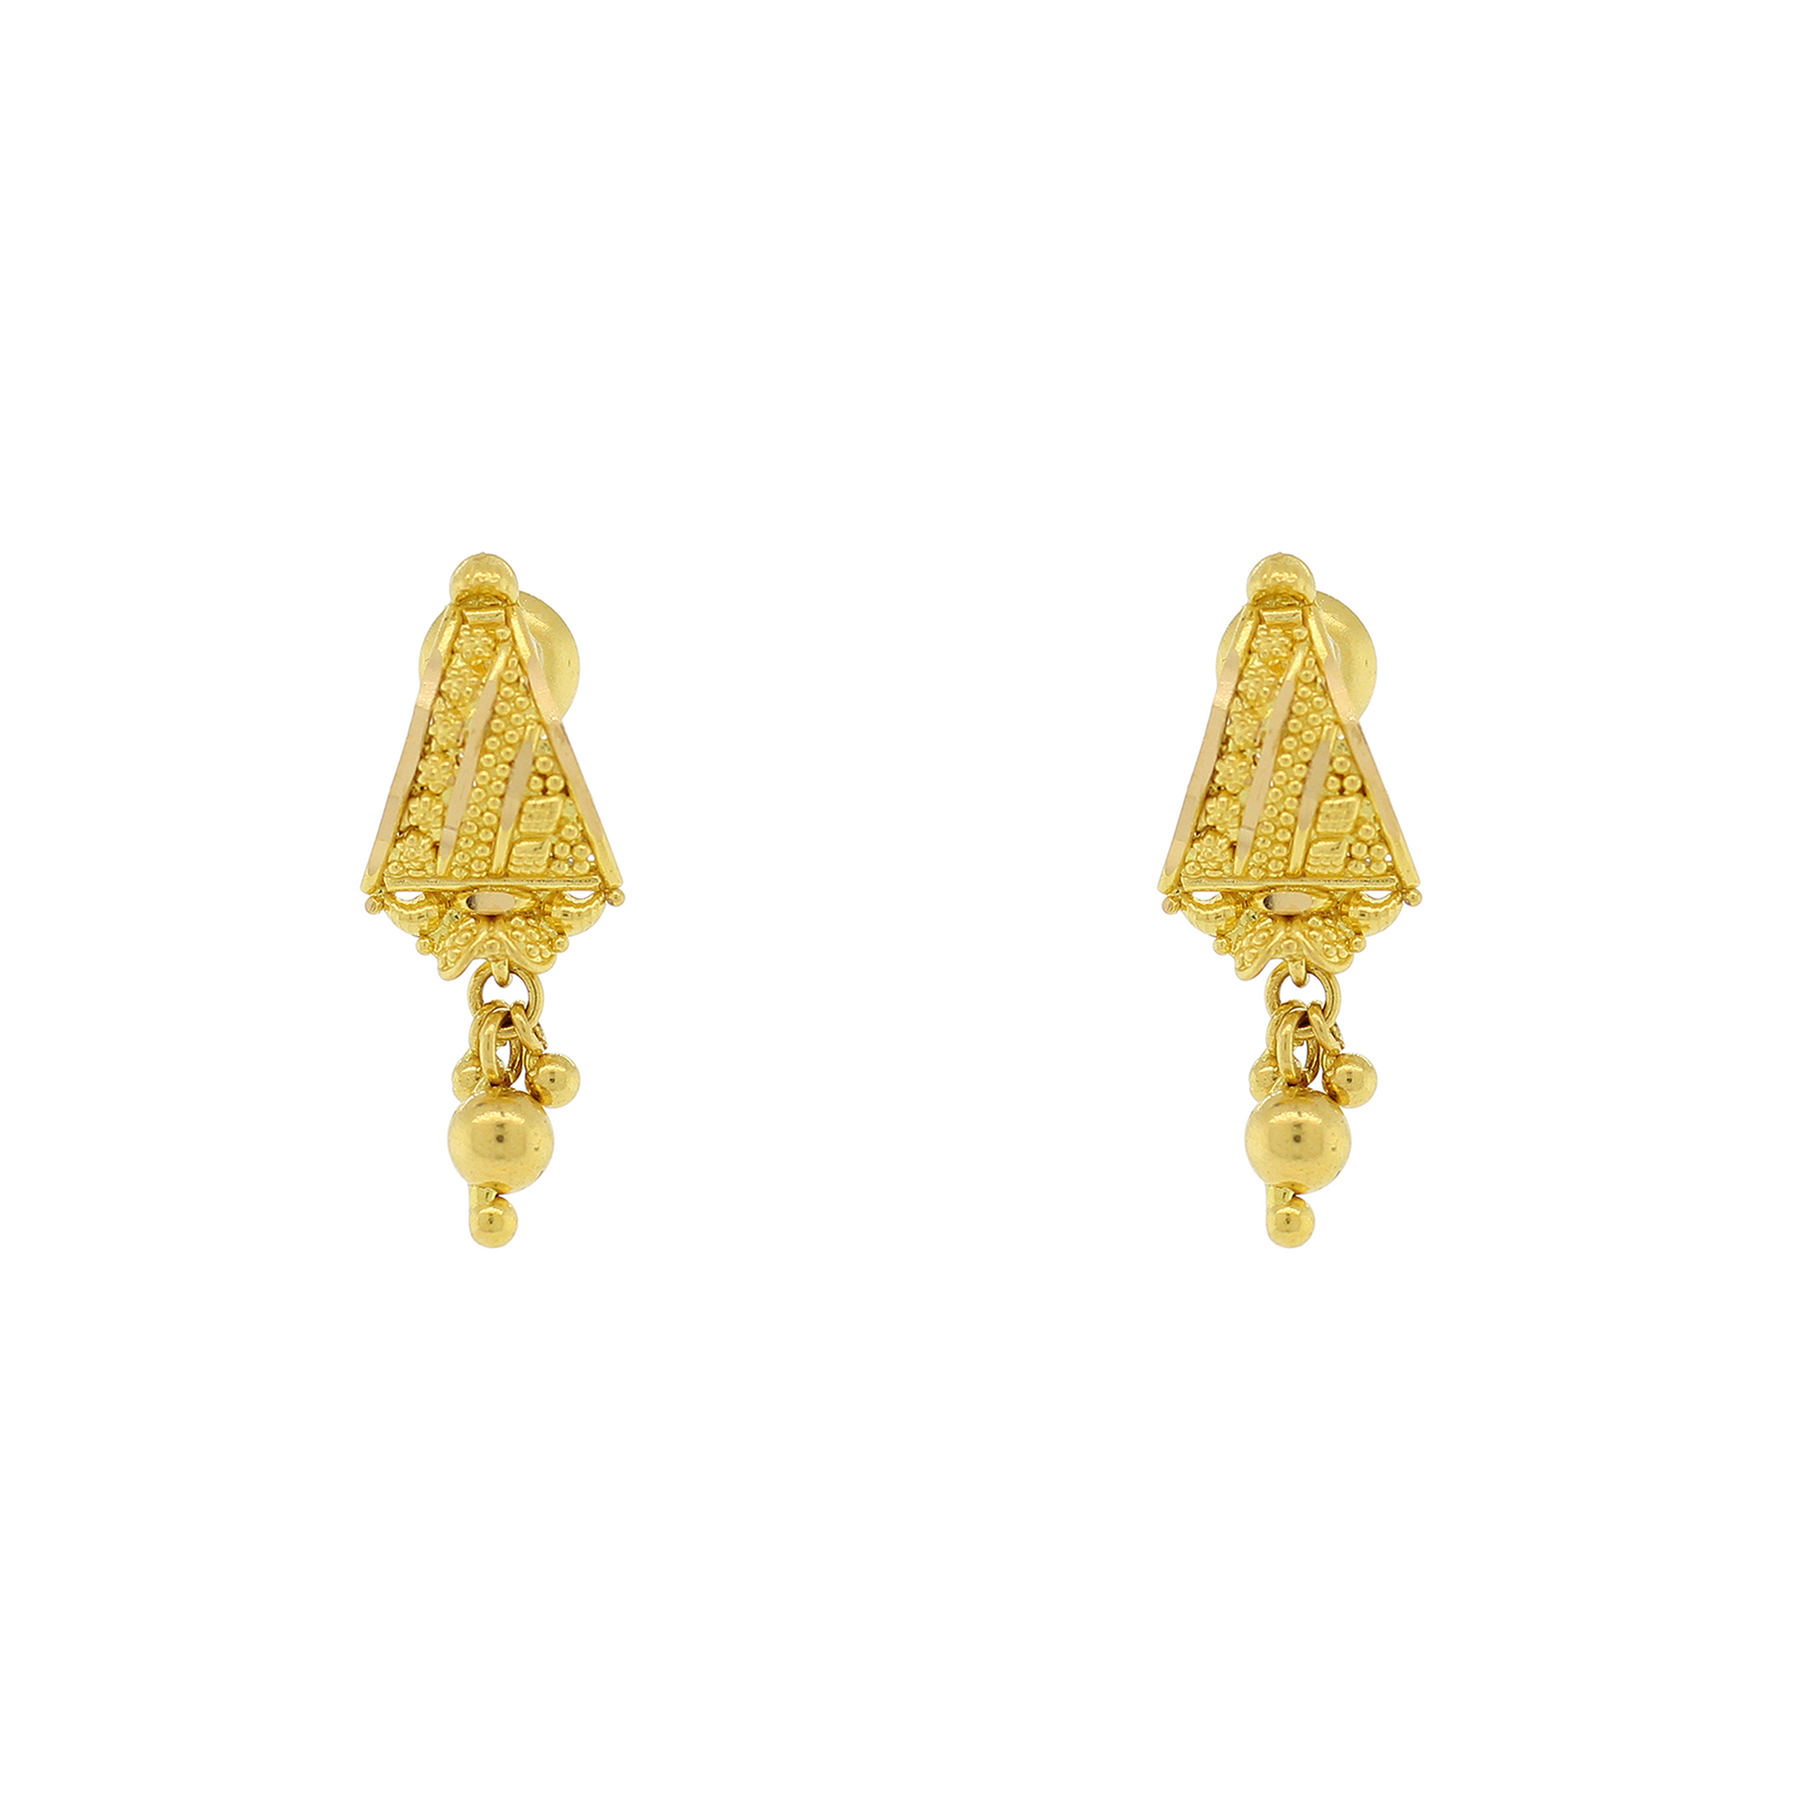 GOLD EARRINGS WITH HANGING DROP – Andaaz Jewelers